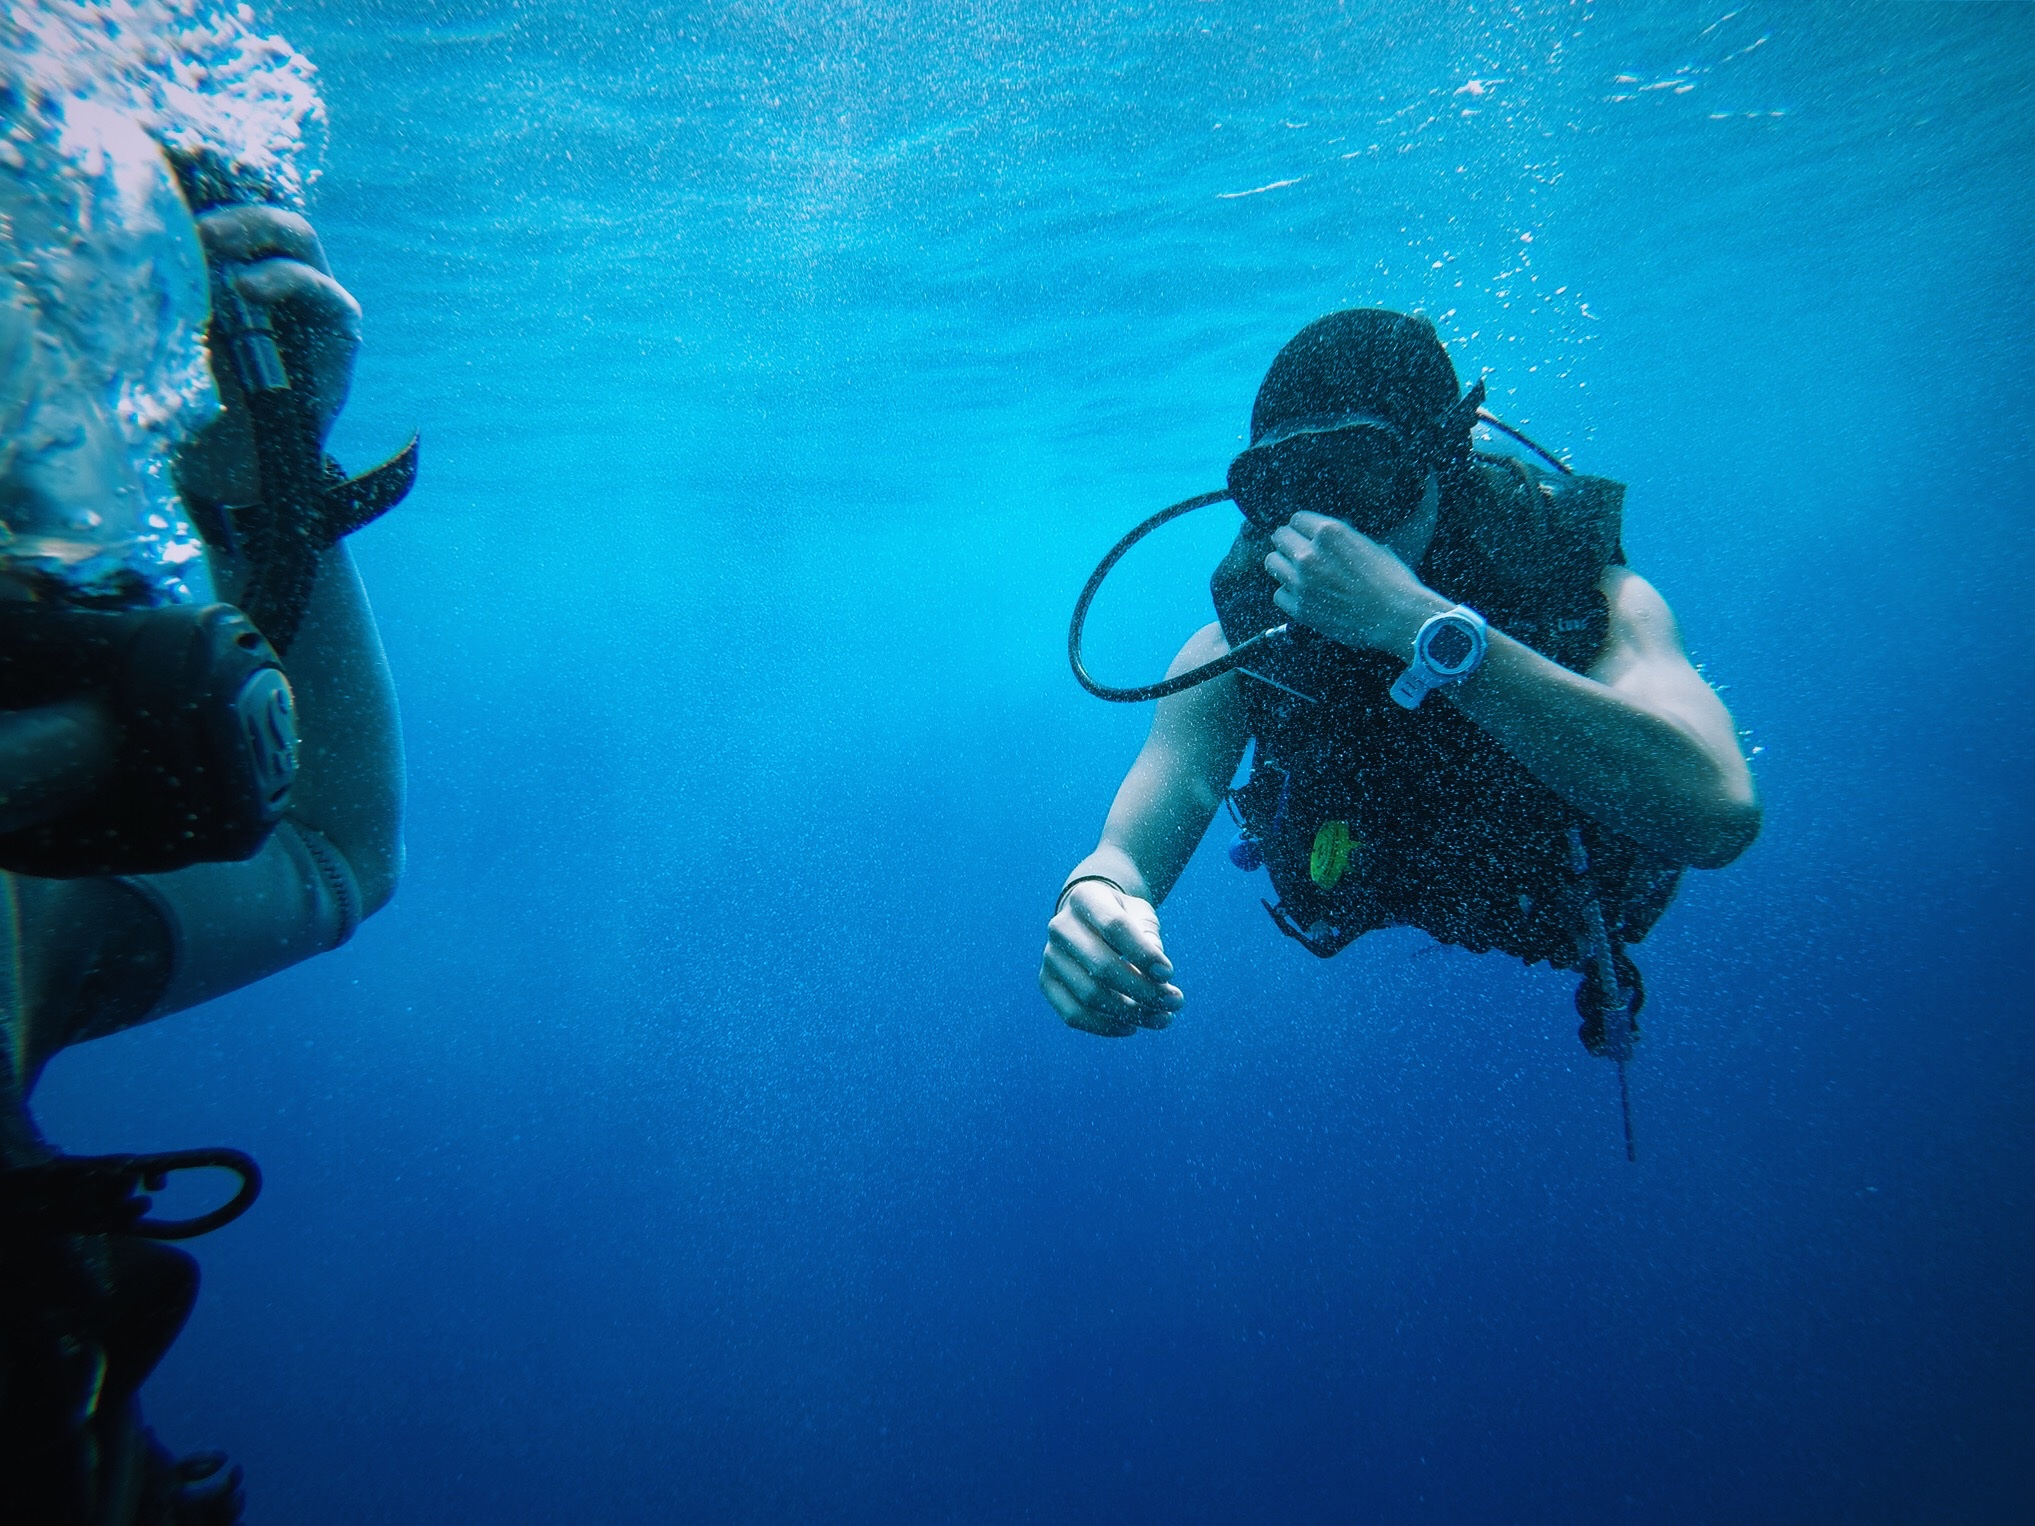 Private Snorkeling - Island Tour -Snorkel and Nature preserve boat tour of the Isles of Mujeres & Contoy